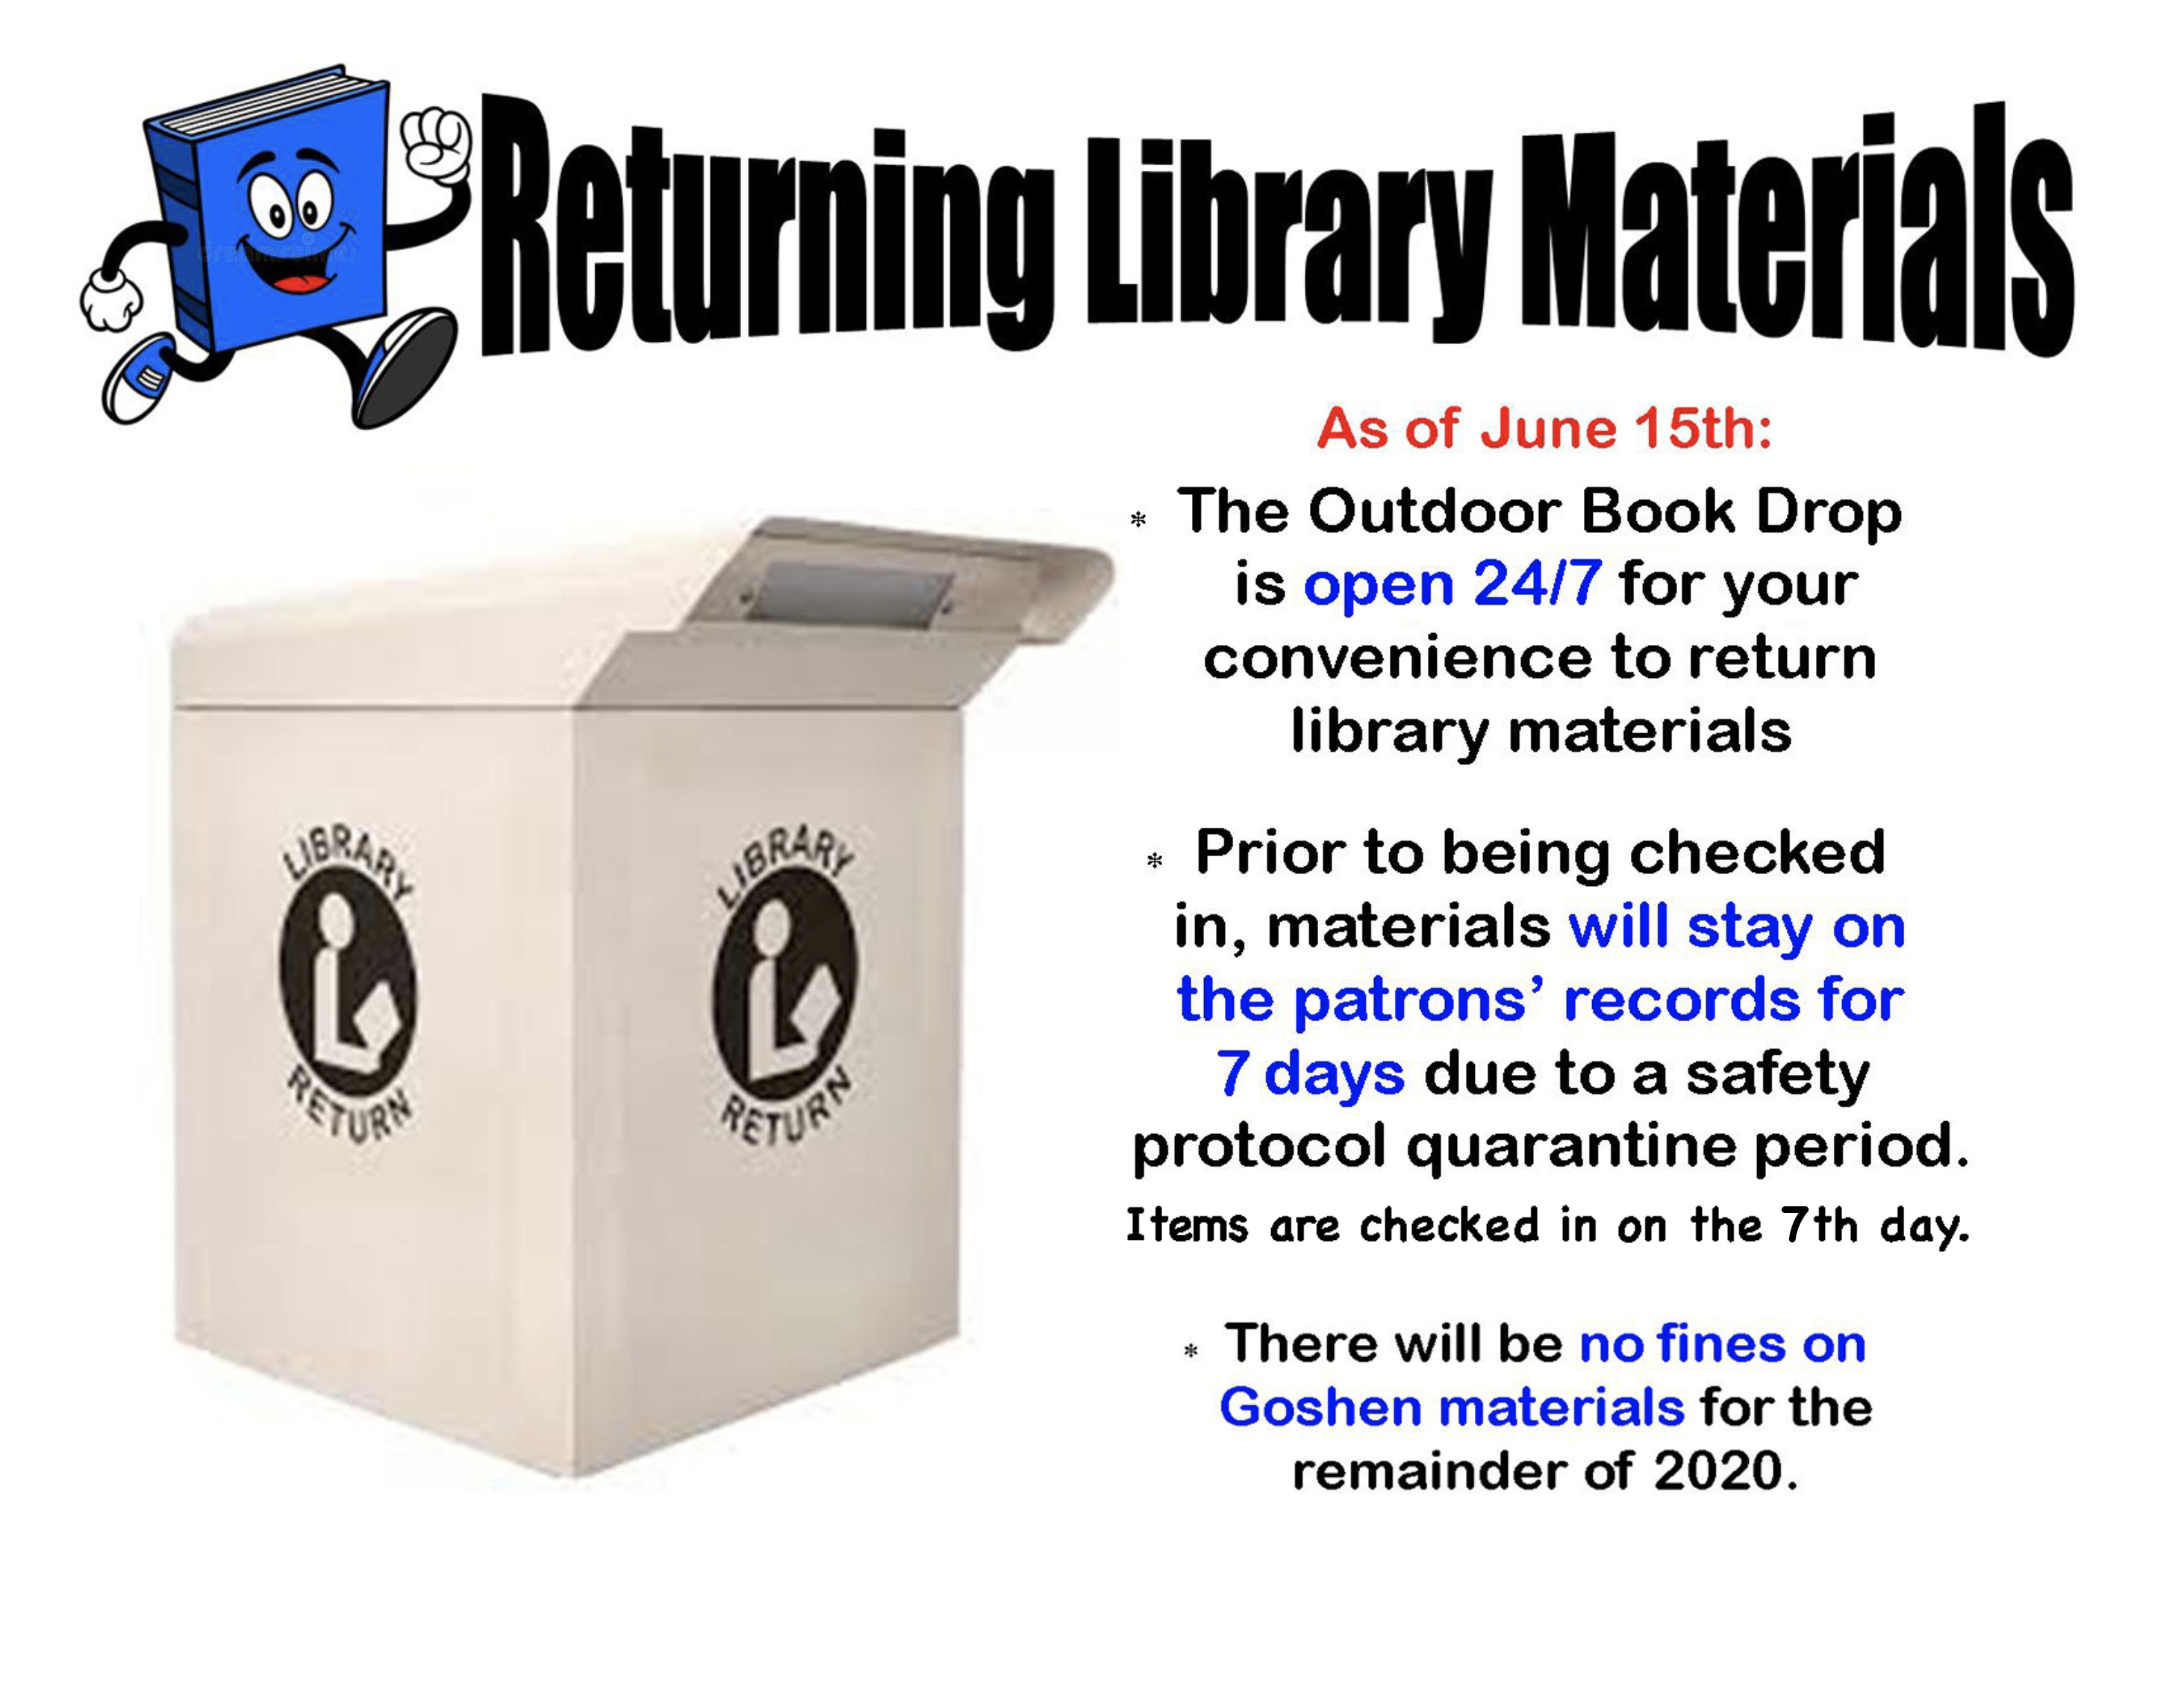 Returning Library Materials 2020